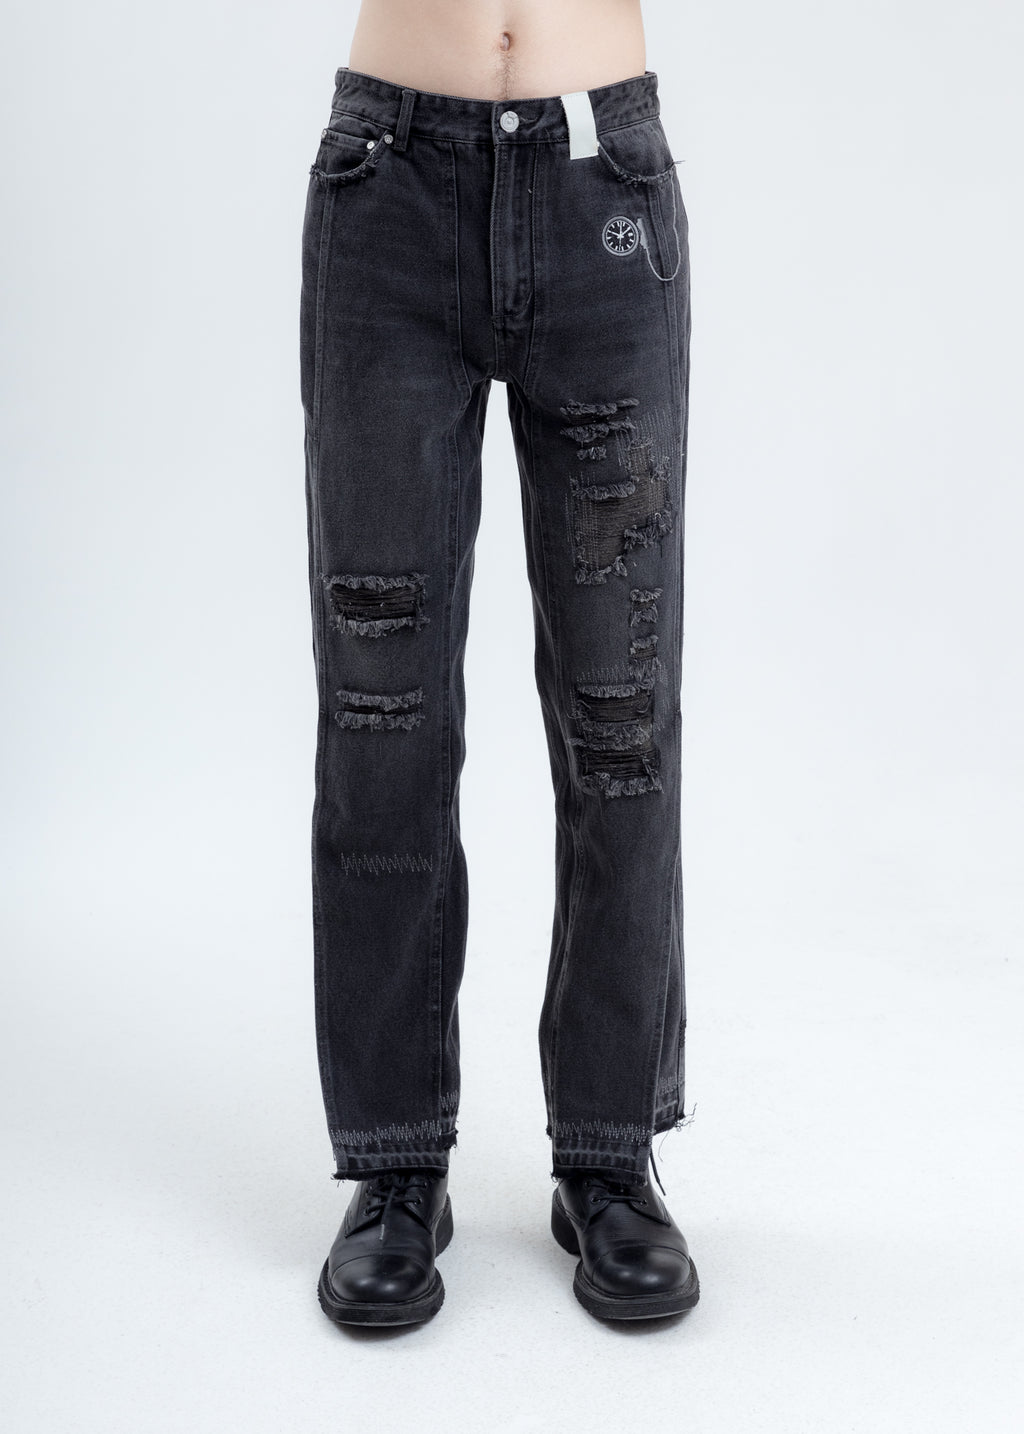 Black Distressed Chaotic Denim Jeans